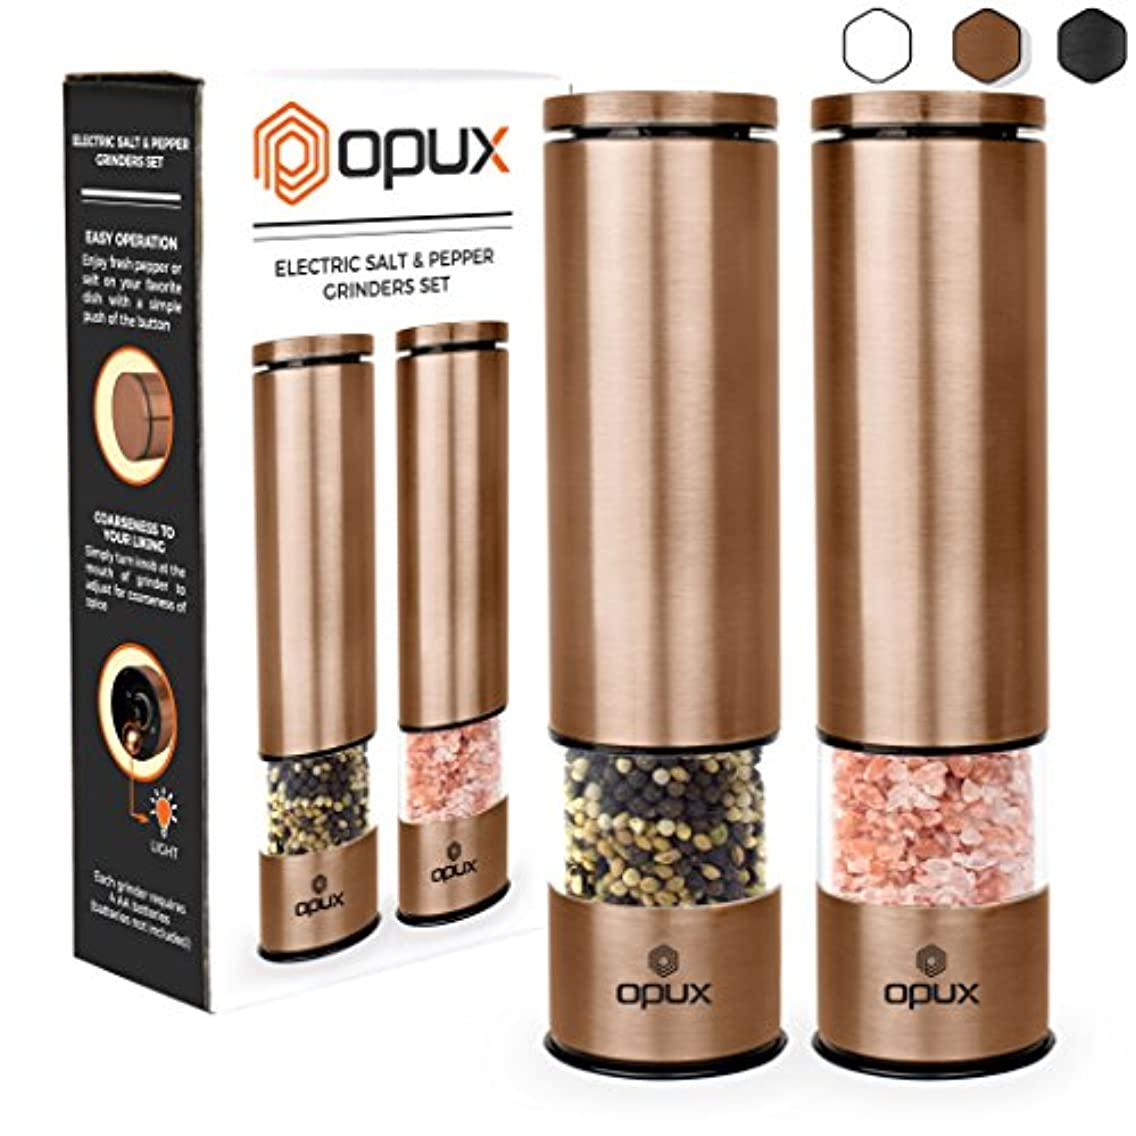 OPUX Battery Operated Salt and Pepper Grinder Set | Electric Pepper Mill, Automatic Salt Grinder with LED Light, Bottom Cover | Brushed Stainless Steel Shakers, Sleek Modern Design (Copper)